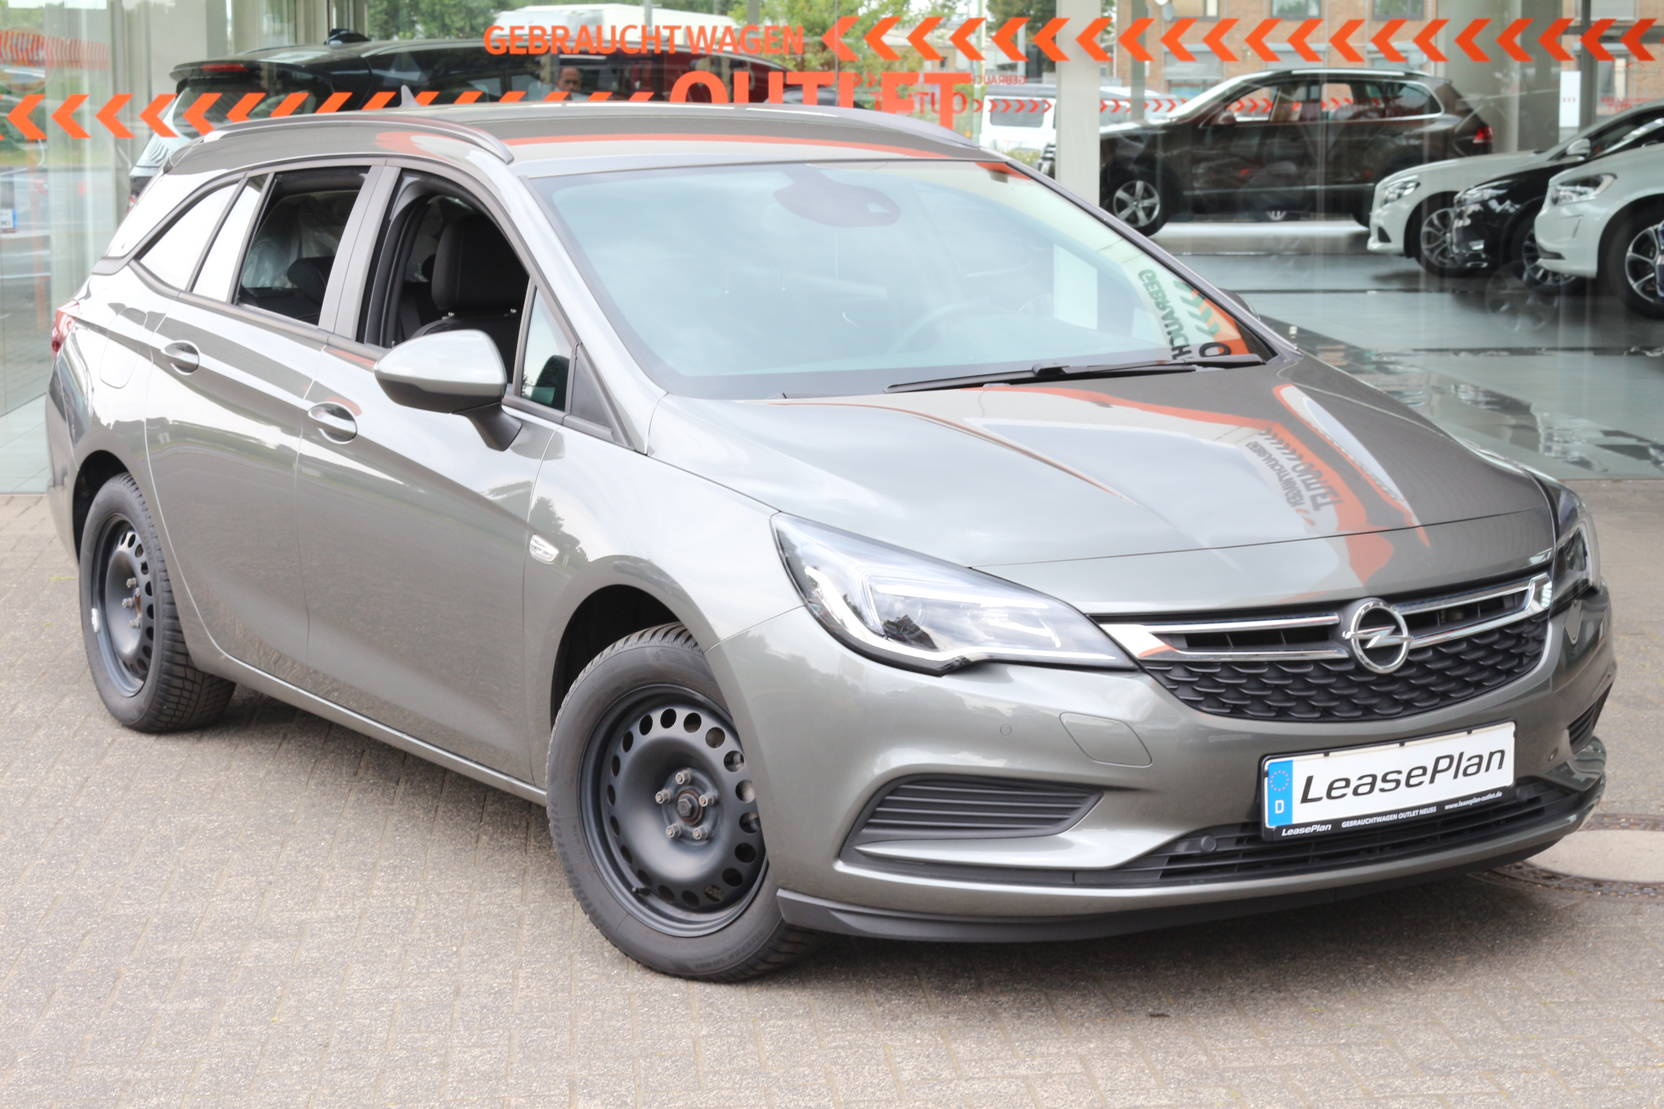 Opel Astra Sports Tourer 1.0 Turbo Start/Stop Edition (658770) detail1